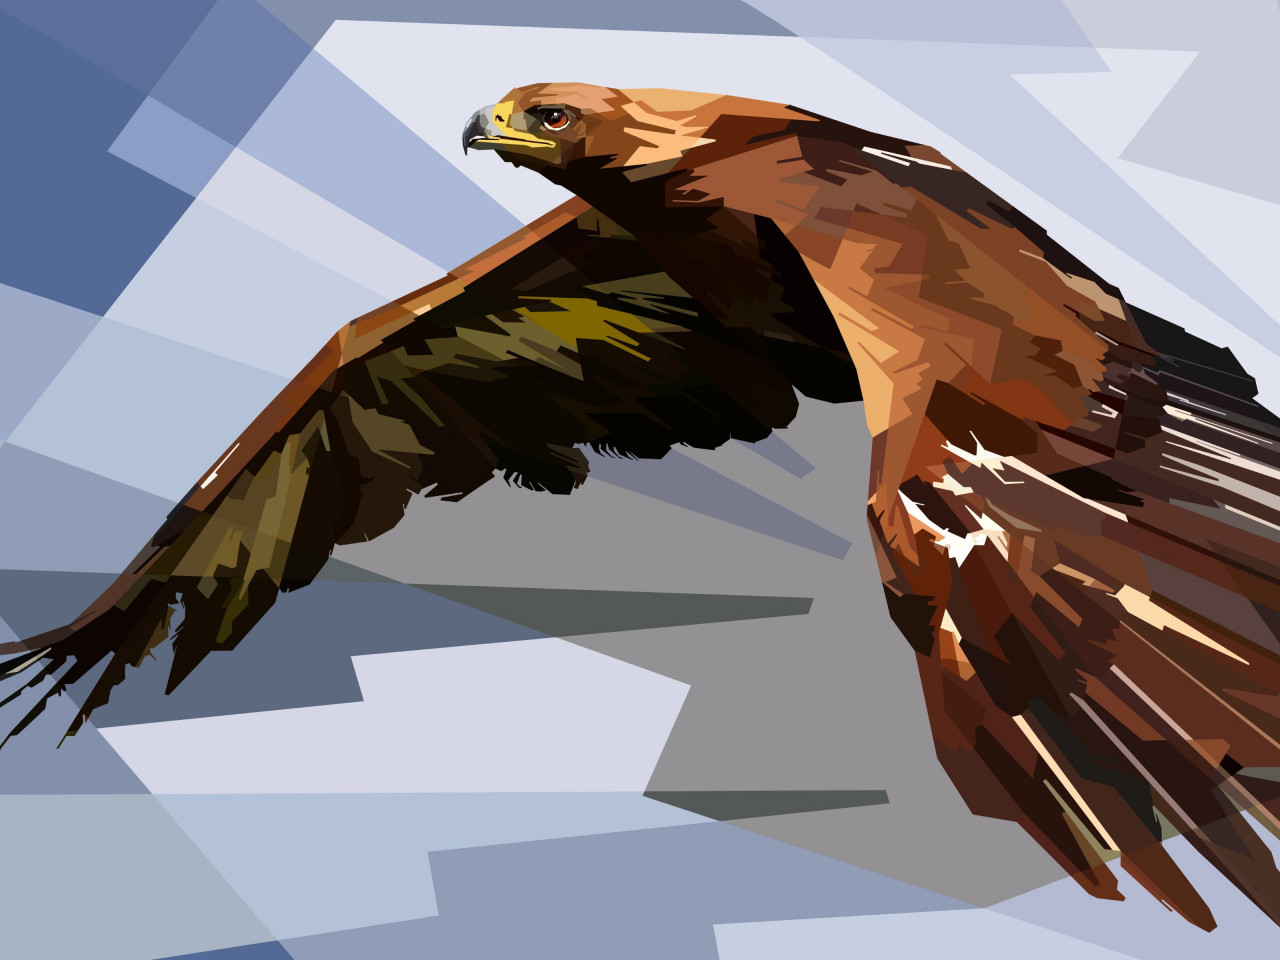 Digital drawing of an eagle | 1280x960 wallpaper